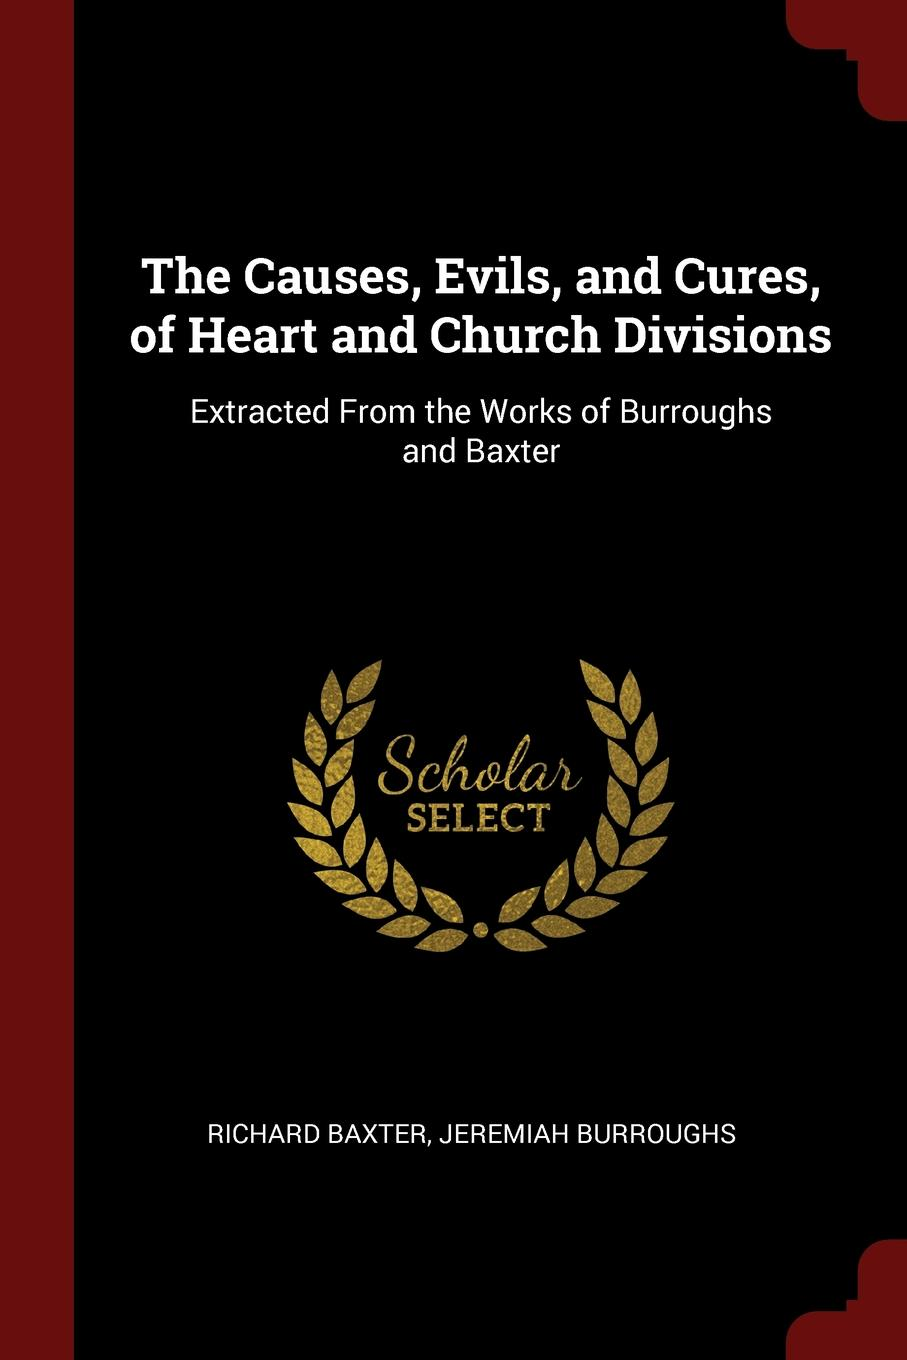 Richard Baxter, Jeremiah Burroughs The Causes, Evils, and Cures, of Heart Church Divisions. Extracted From the Works Baxter